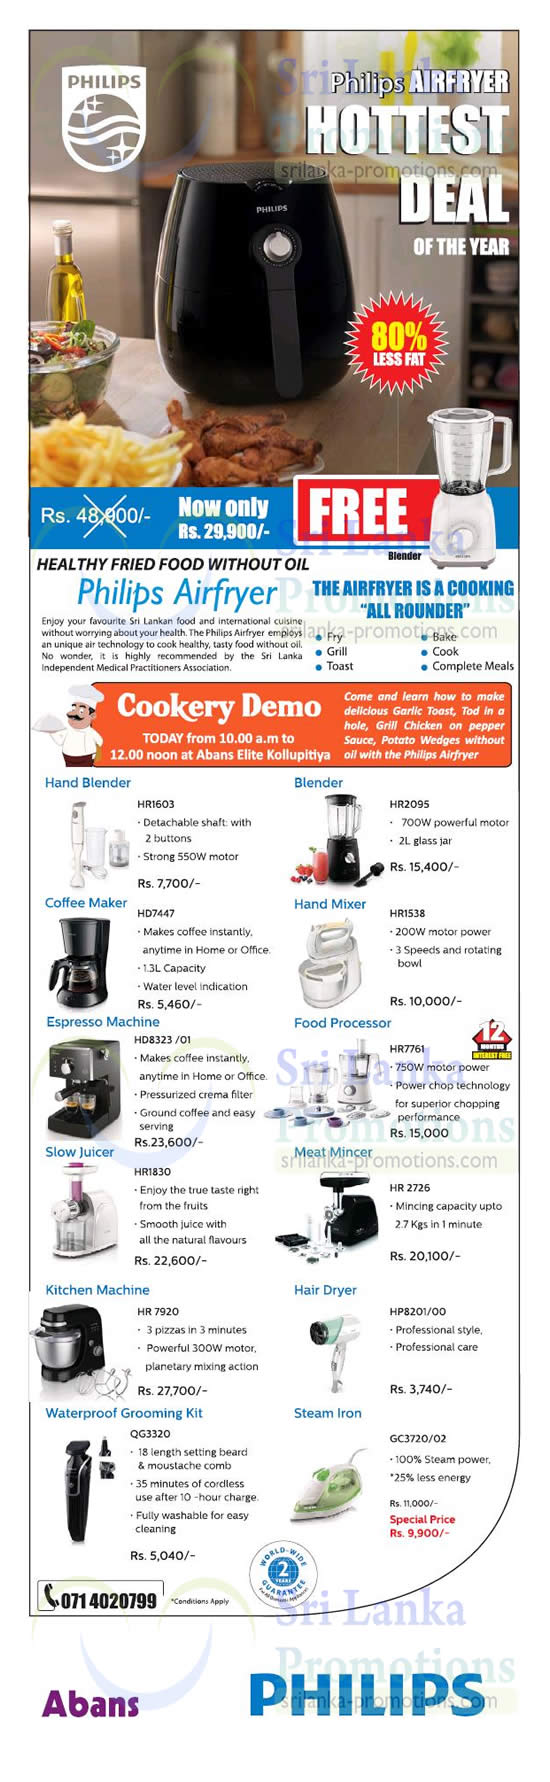 Philips Kitchen Appliances Offers @ Abans 22 Aug 2015